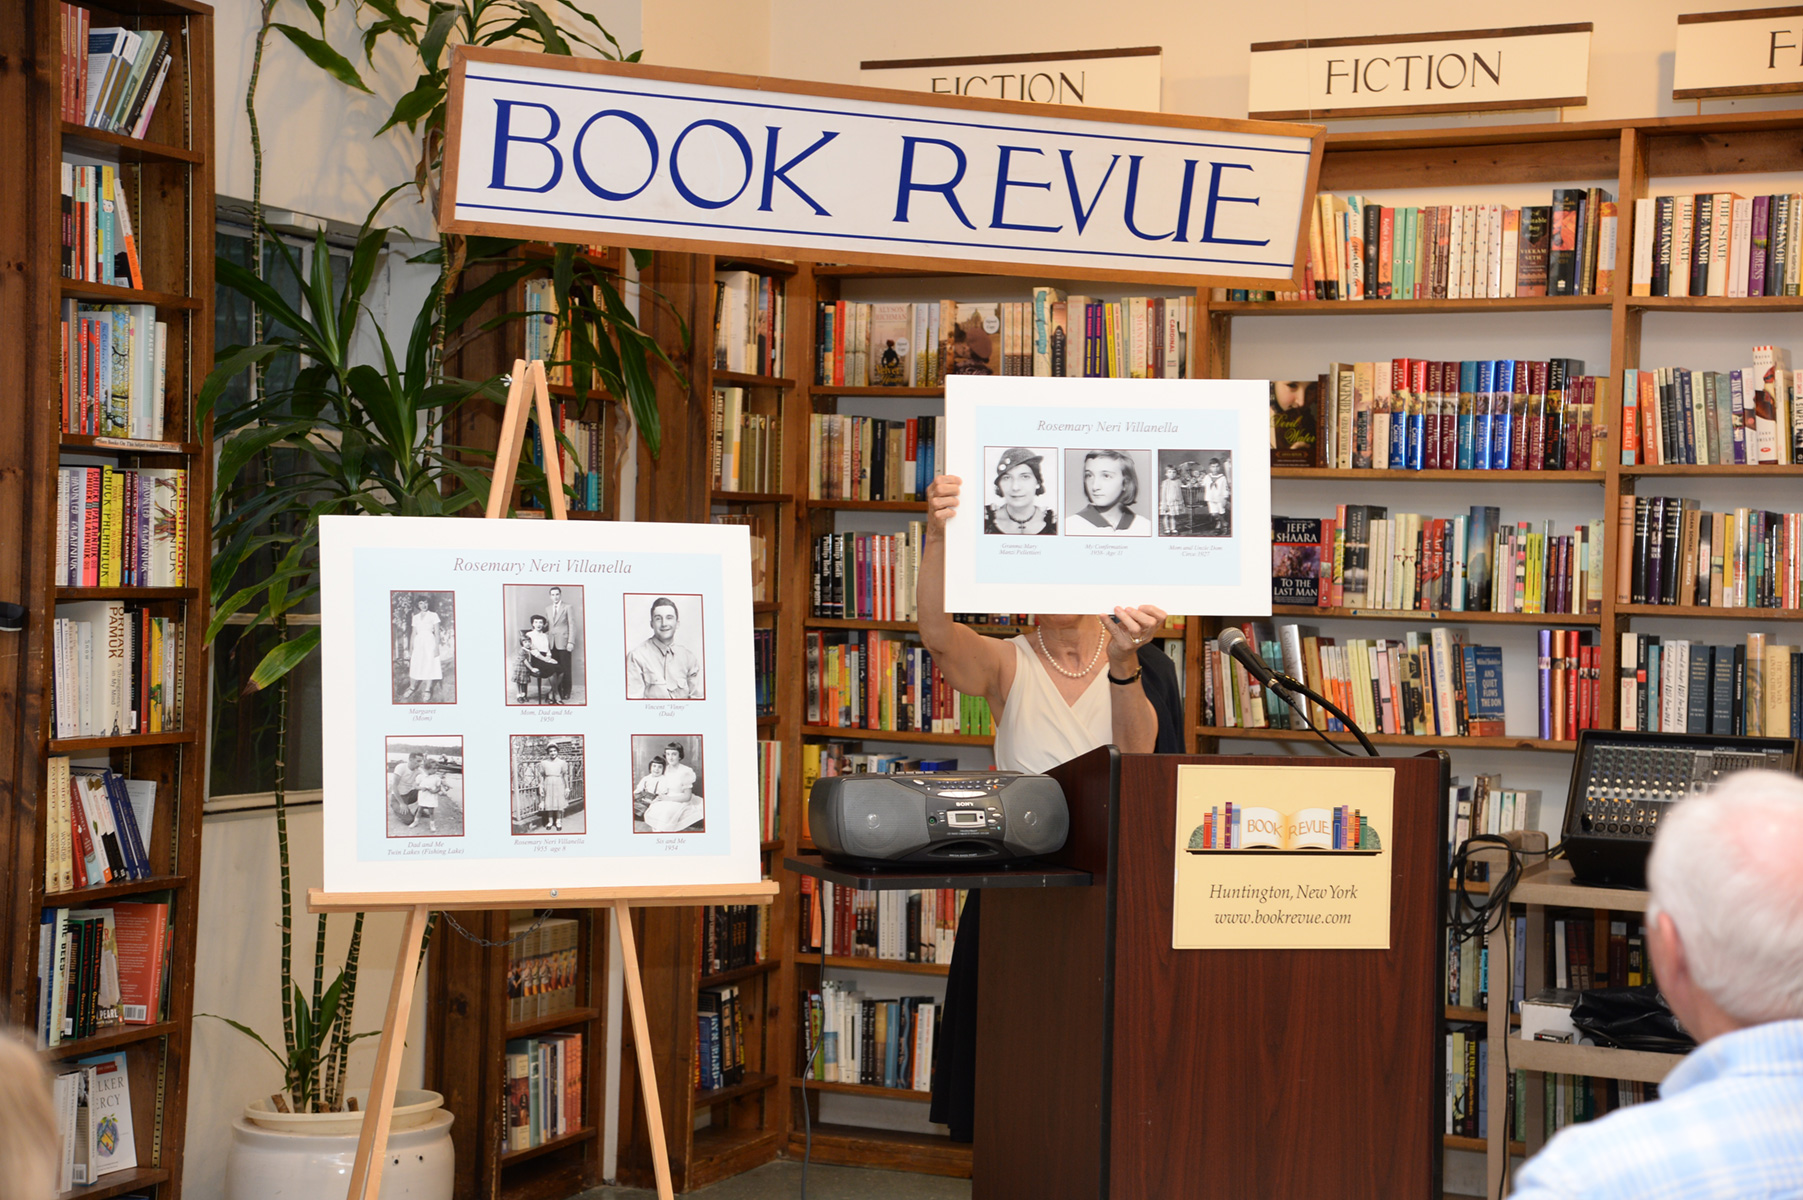 Personal family photos shared with her readers and discussed by Rosemary Neri Villanella at her book signing at  Book Revue , Huntington, NY, July 17th, 2017  (Photo by John Ellis Kordes)